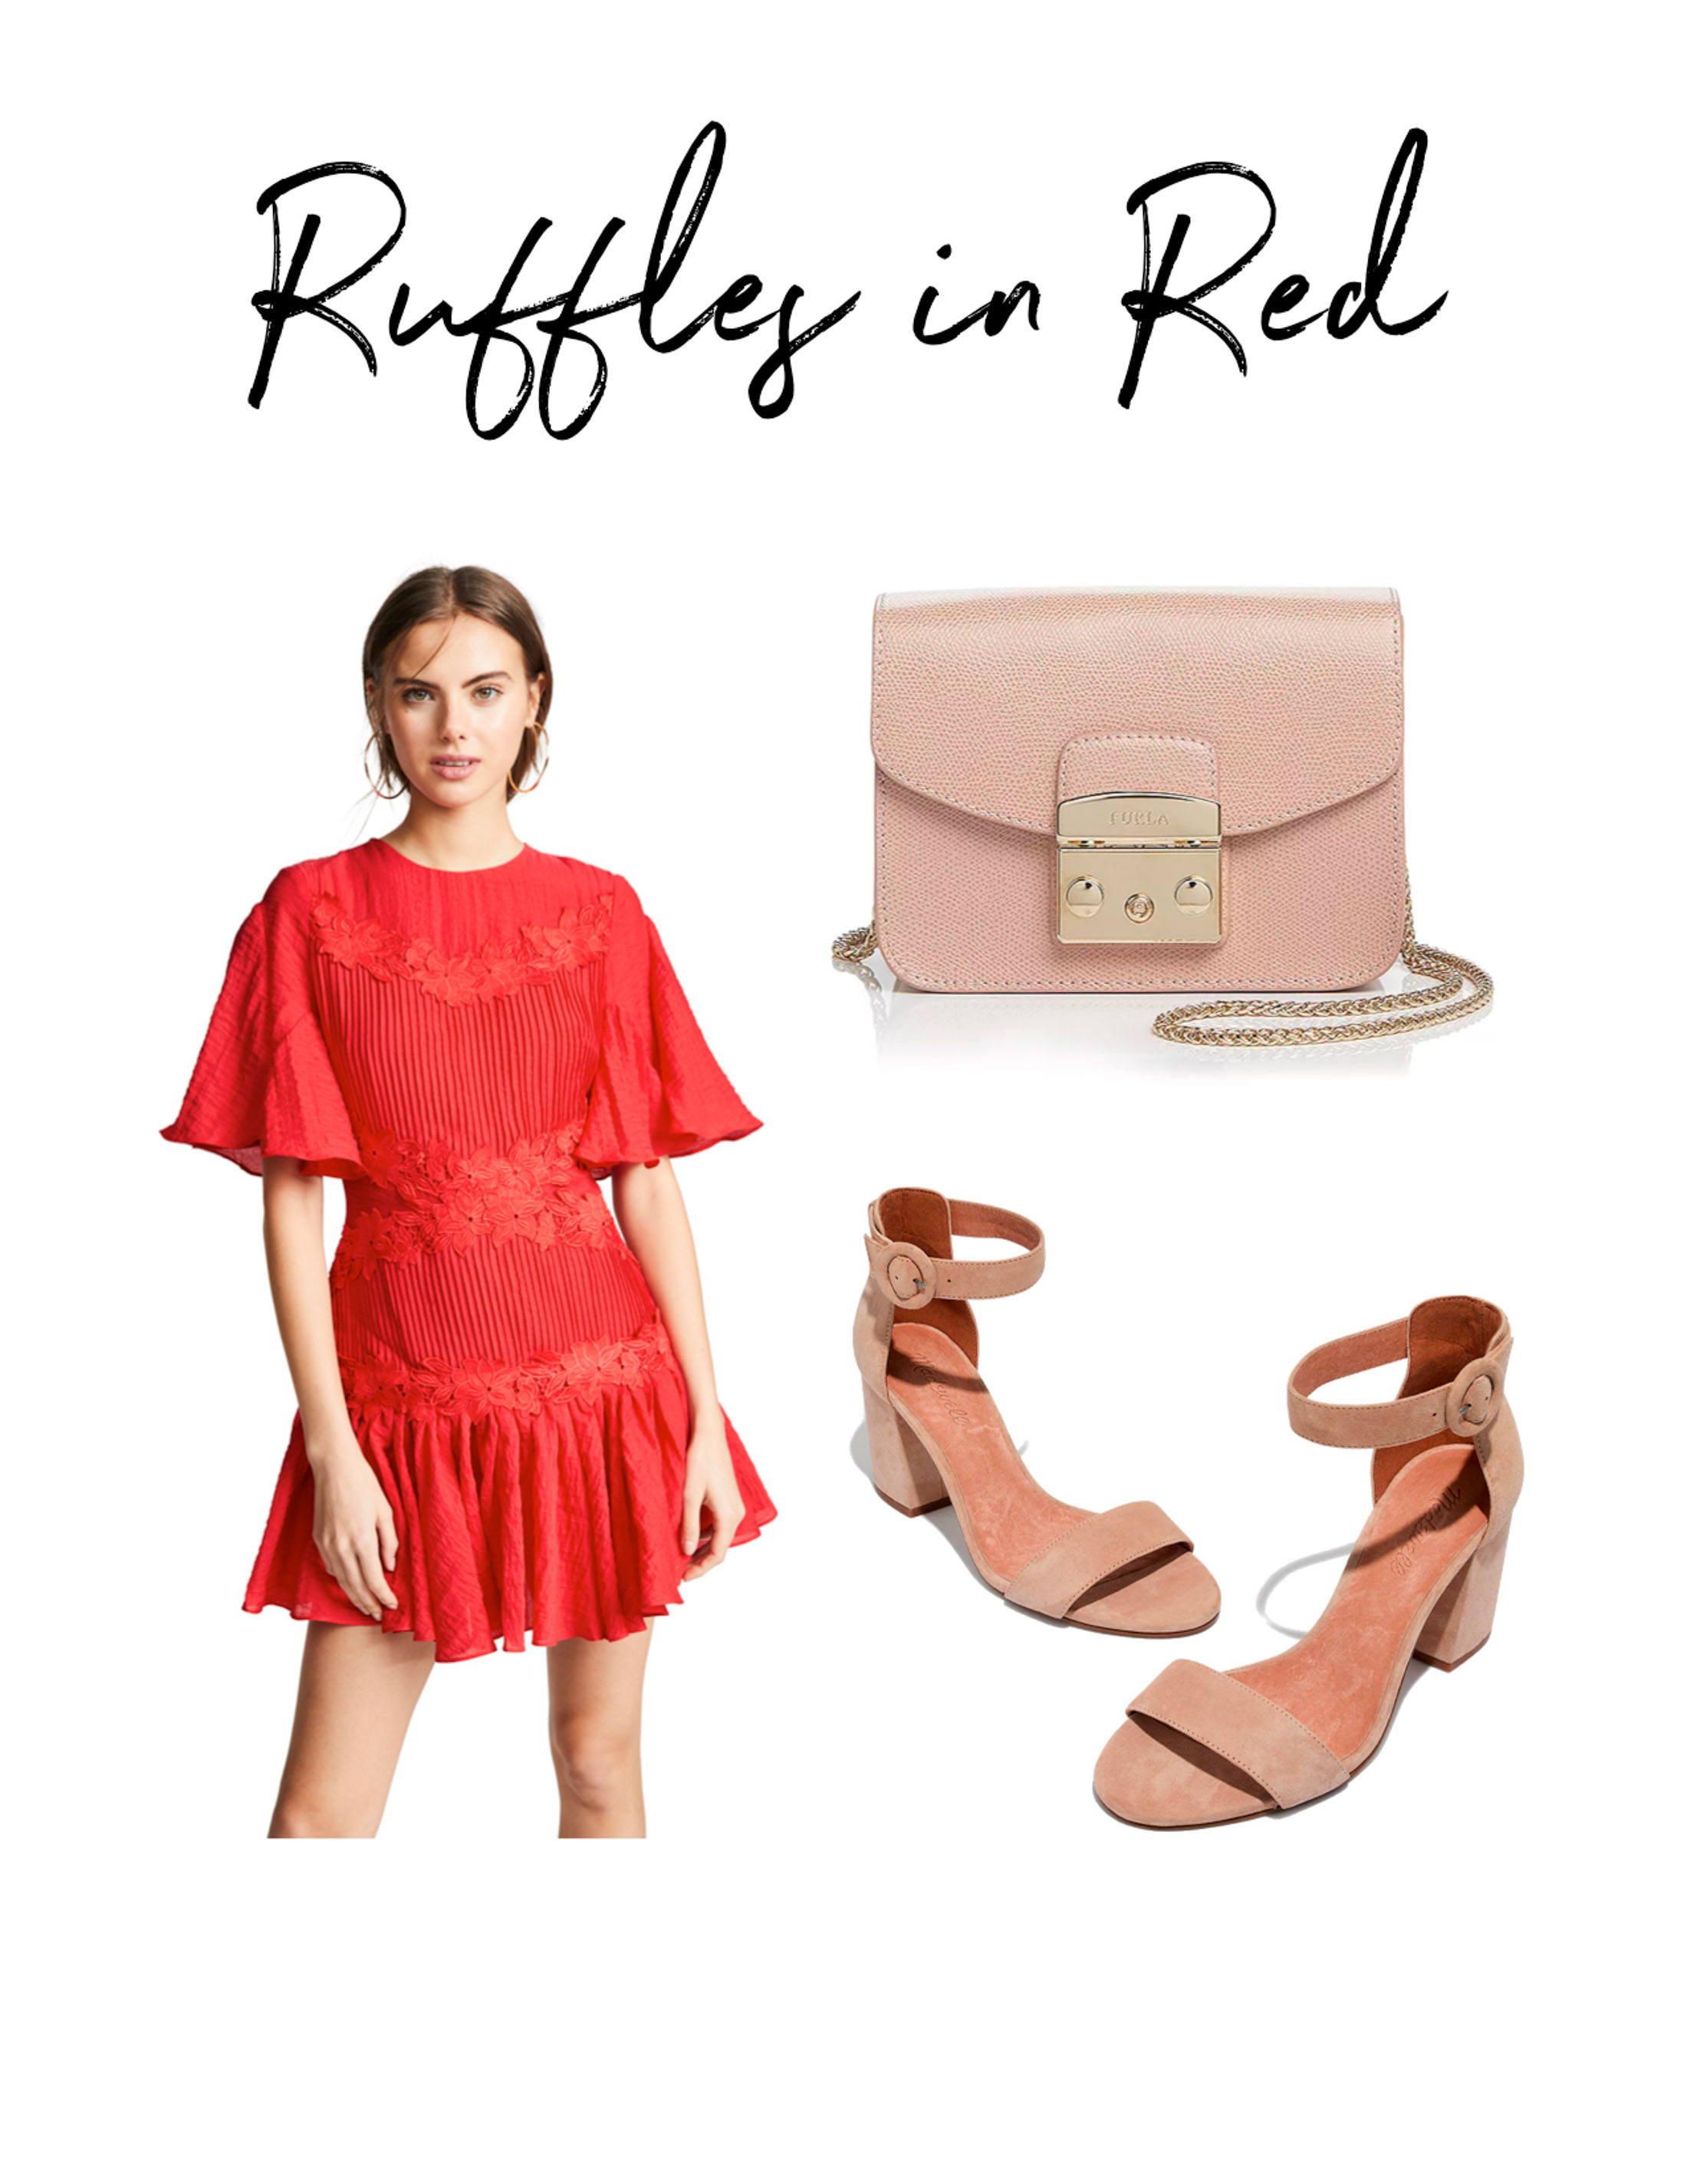 Nothing like a romantic, swoon-worthy red dress. Whether you need a Valentine's Day outfit, date-night dress or winter pick-me-up —we have 4 chic styles.